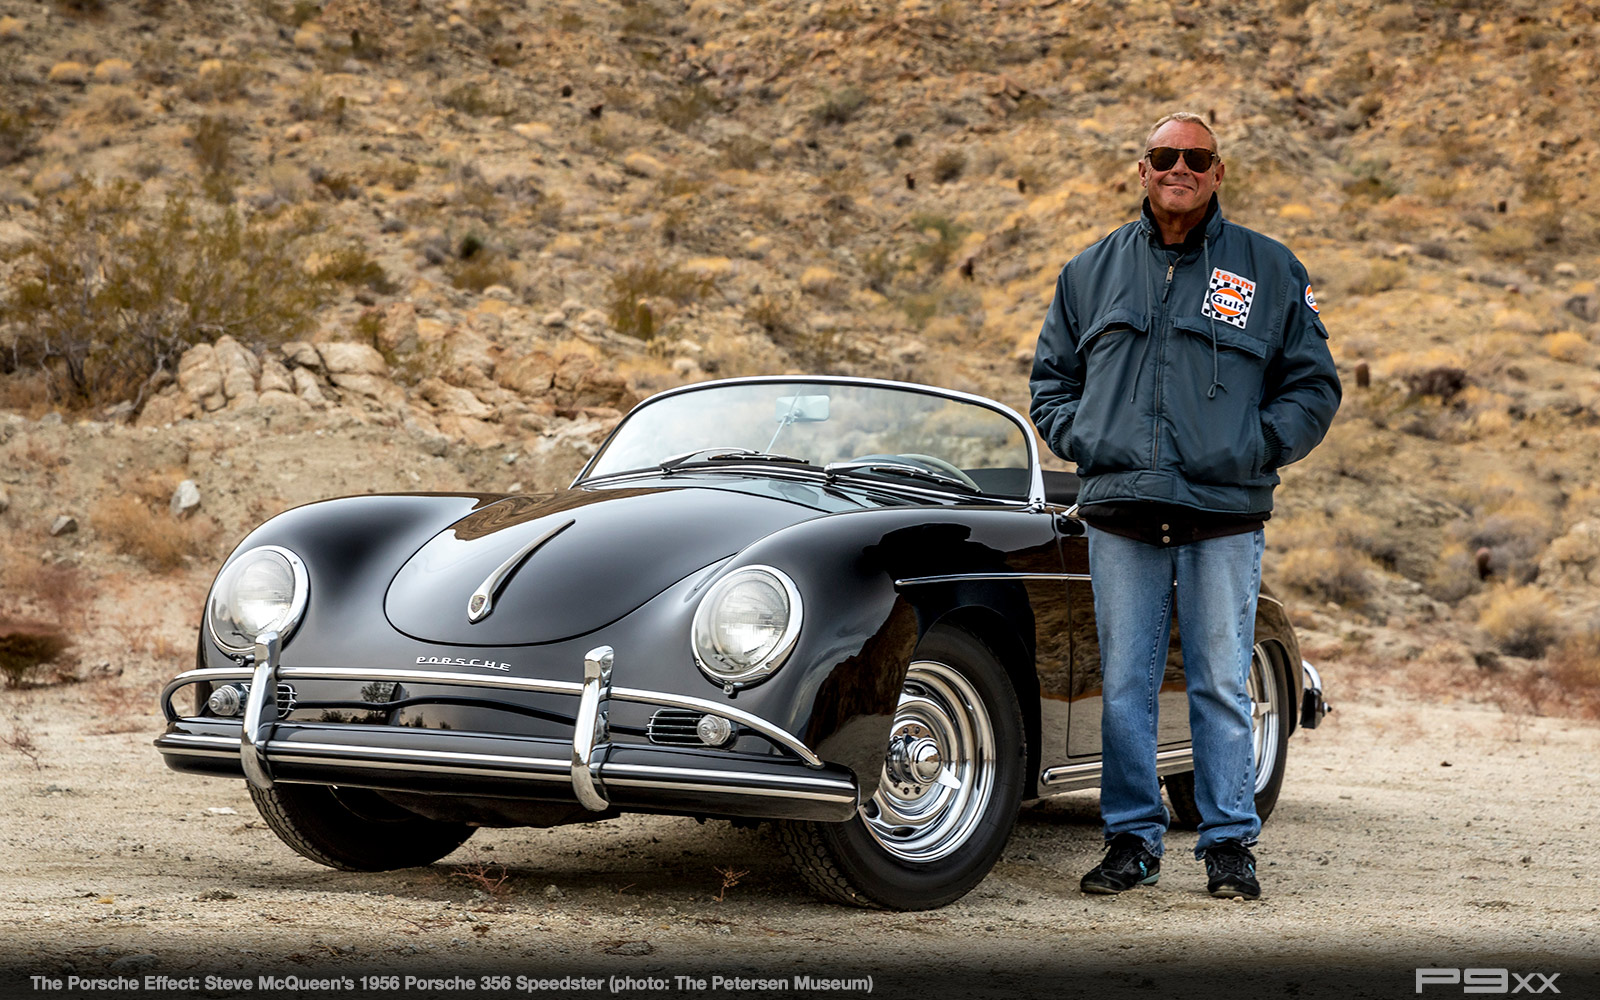 1956-Steve-McQueen-Chad-356-Speedster-Petersen-Automotive-Museum-The-Porsche-Effect-338